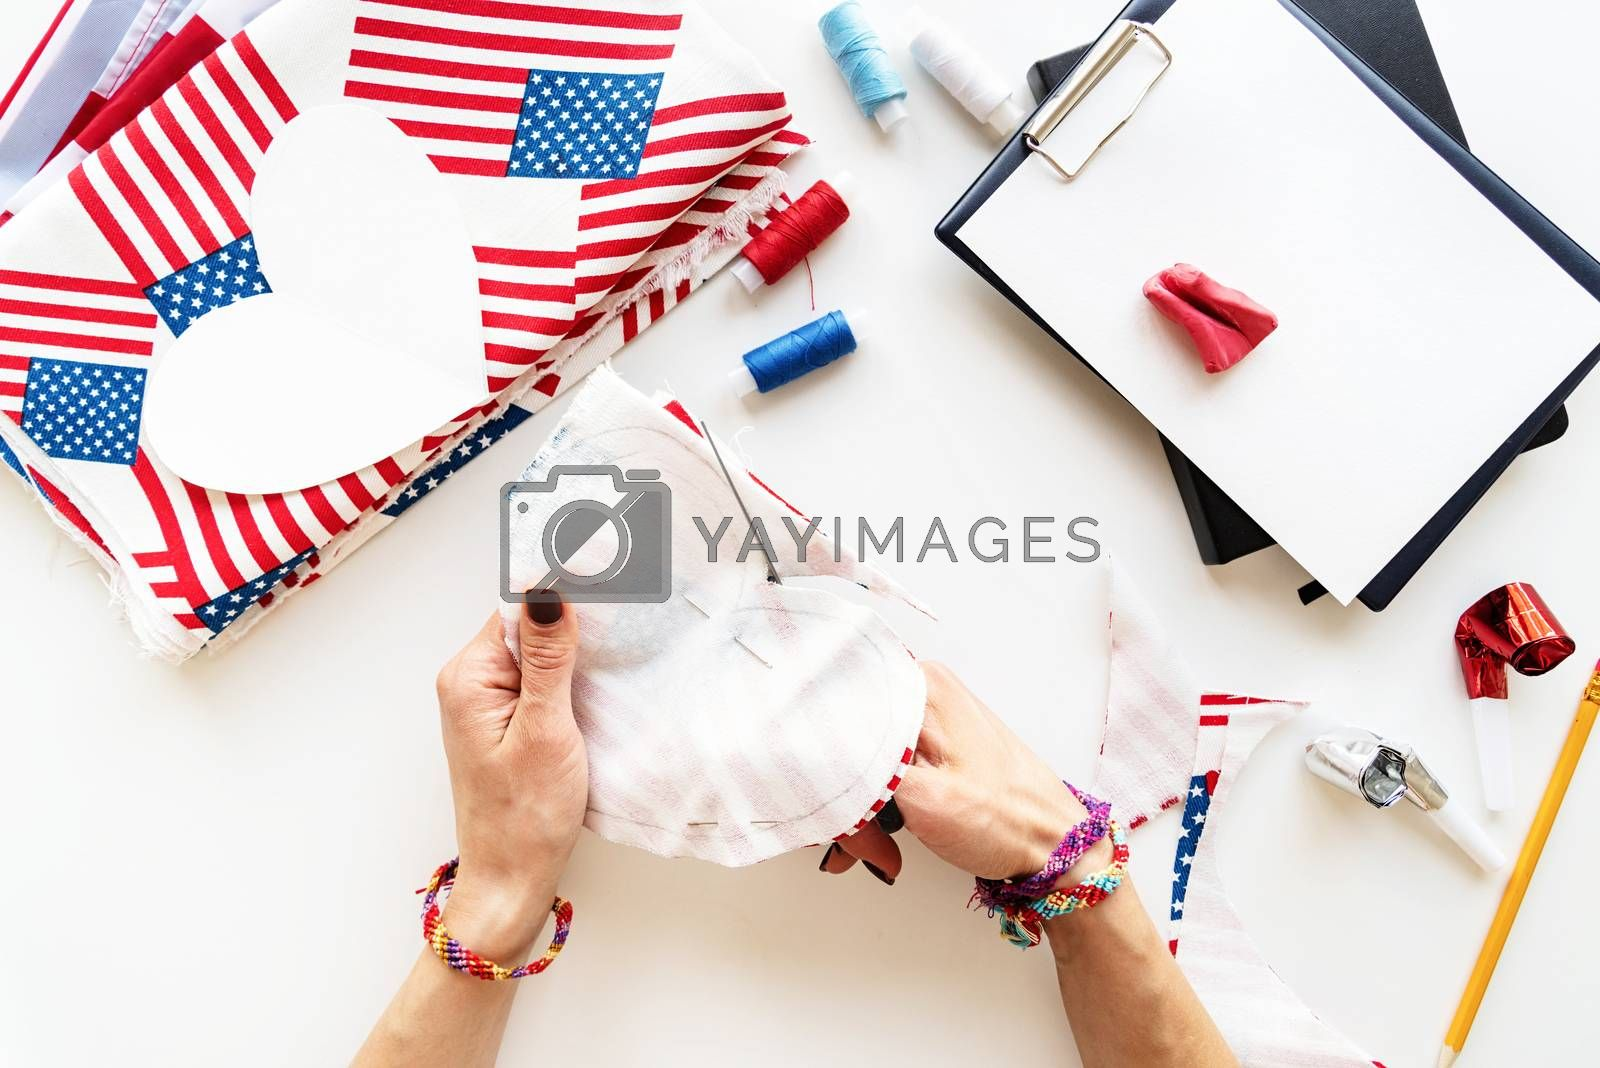 USA Independence Day DIY craft. DIY 4th of July step by step needle holder craft. Step 5 - cutting out by over measure line